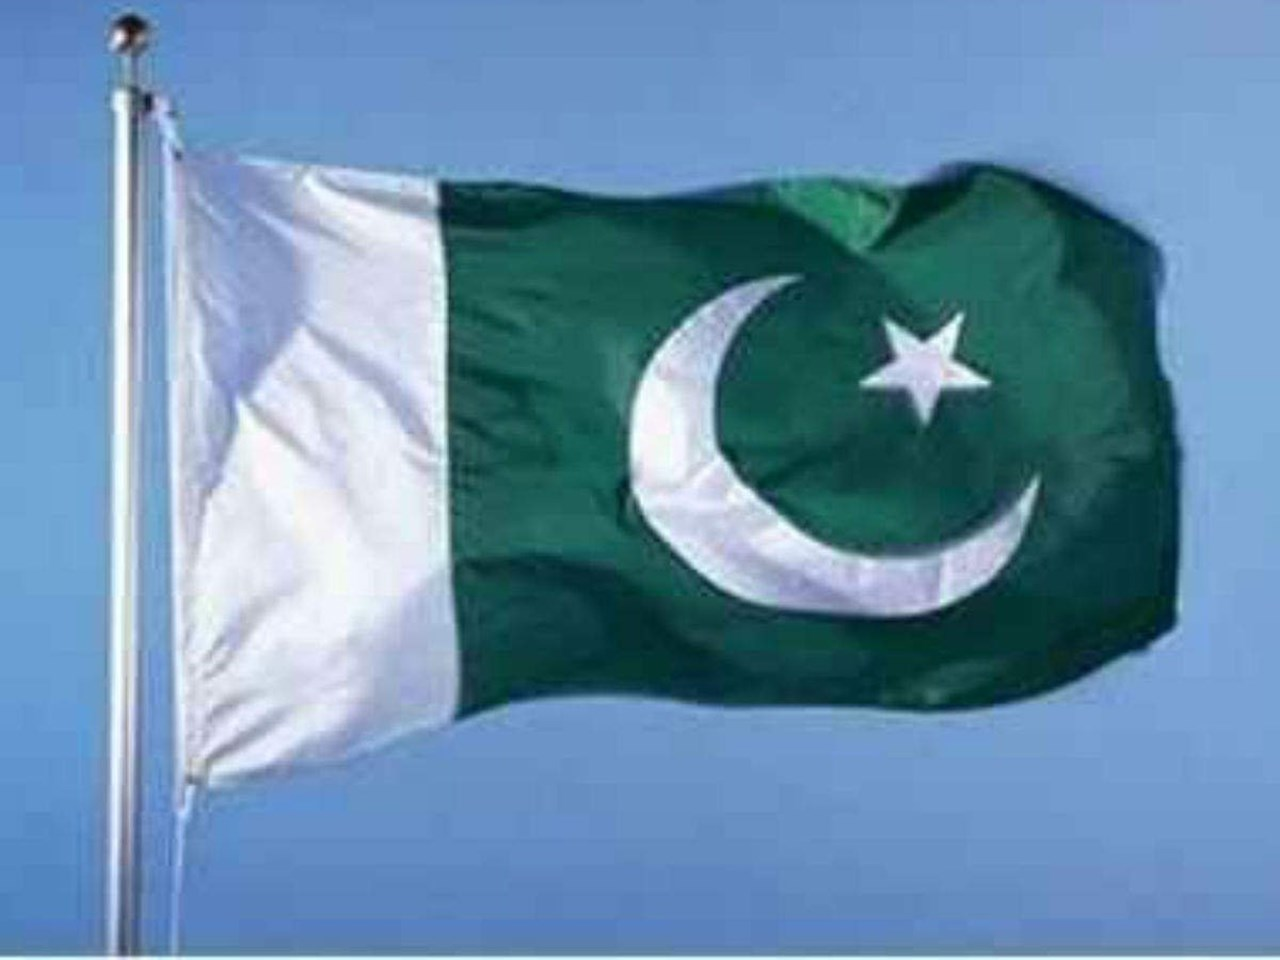 Pakistan wants to bring forward industrial cooperation with China: Official